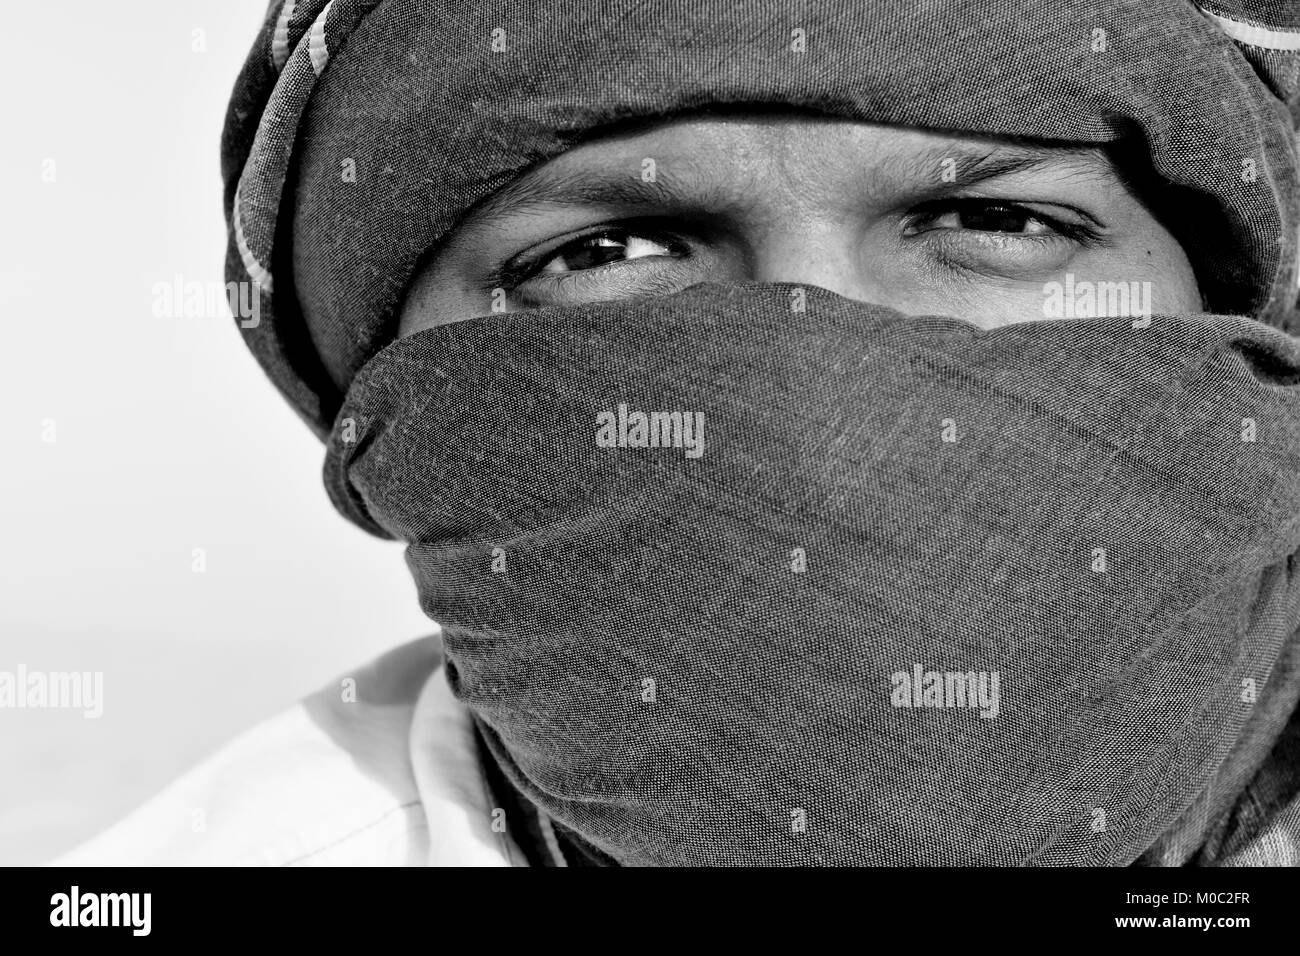 Arabic Men With Head Scarfs In The Desert Sunlight And Sand Stock Photo Alamy